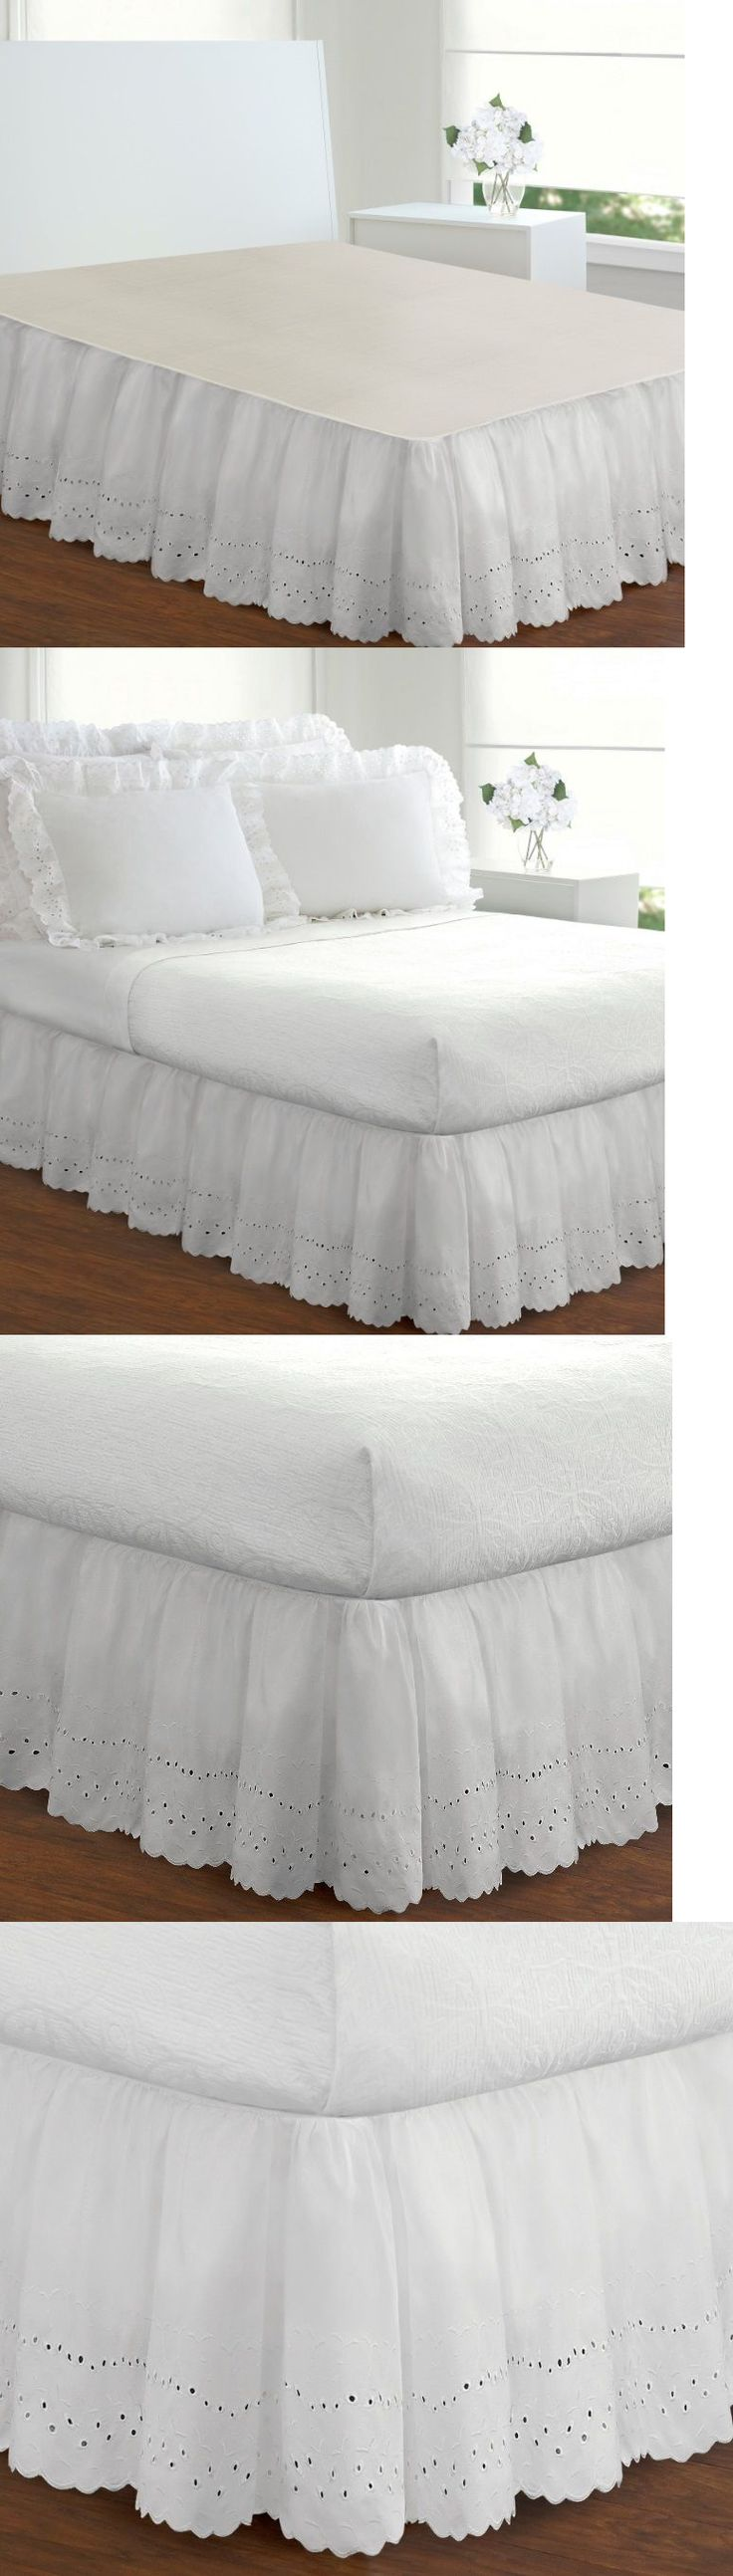 Bed Skirts 20450: Extra Long White Bed Skirt King Size 18 Inch Drop Eyelet Poplin Dust Ruffle -> BUY IT NOW ONLY: $51.95 on eBay!